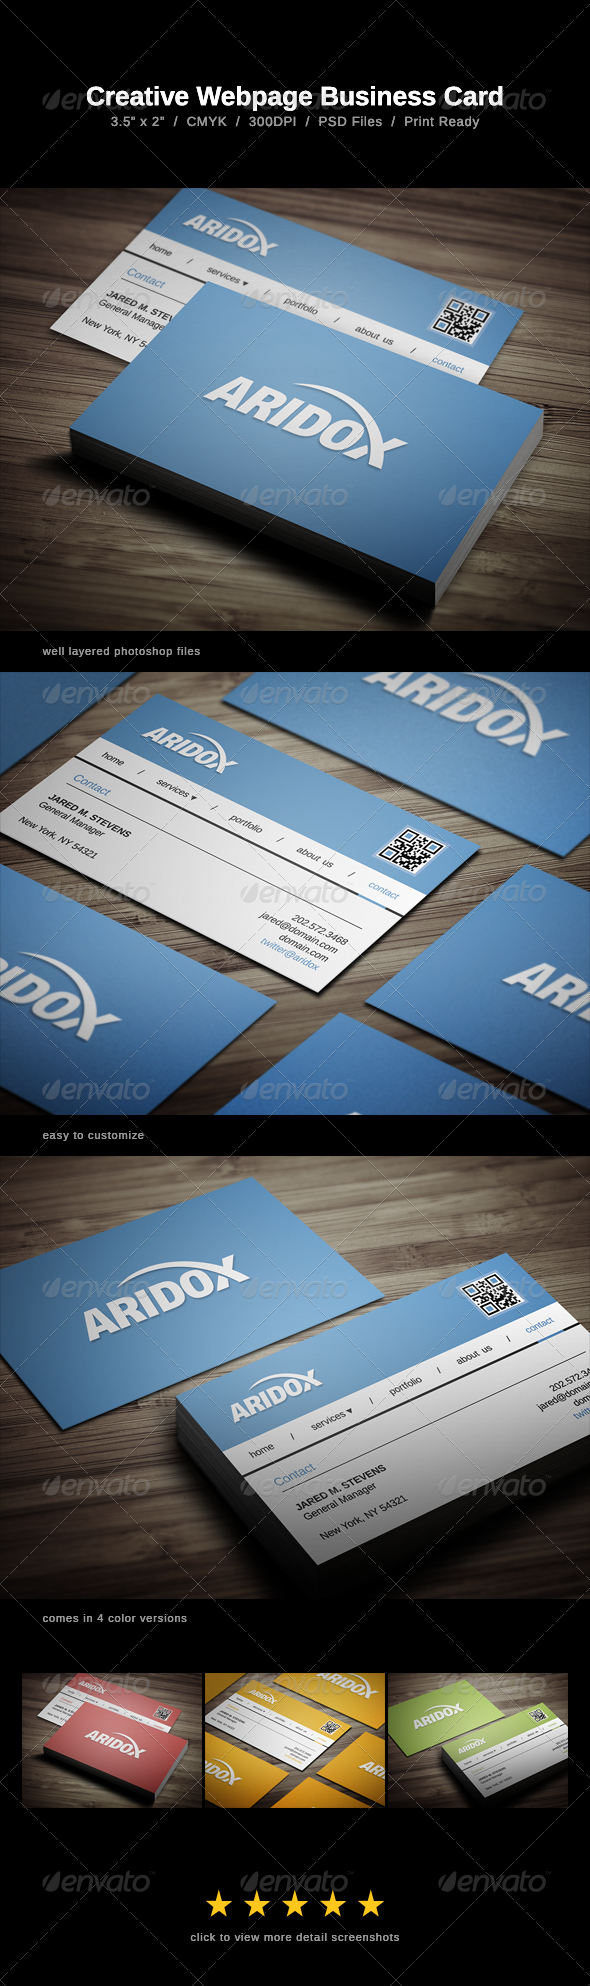 Creative Webpage Business Card - Business Cards Print Templates